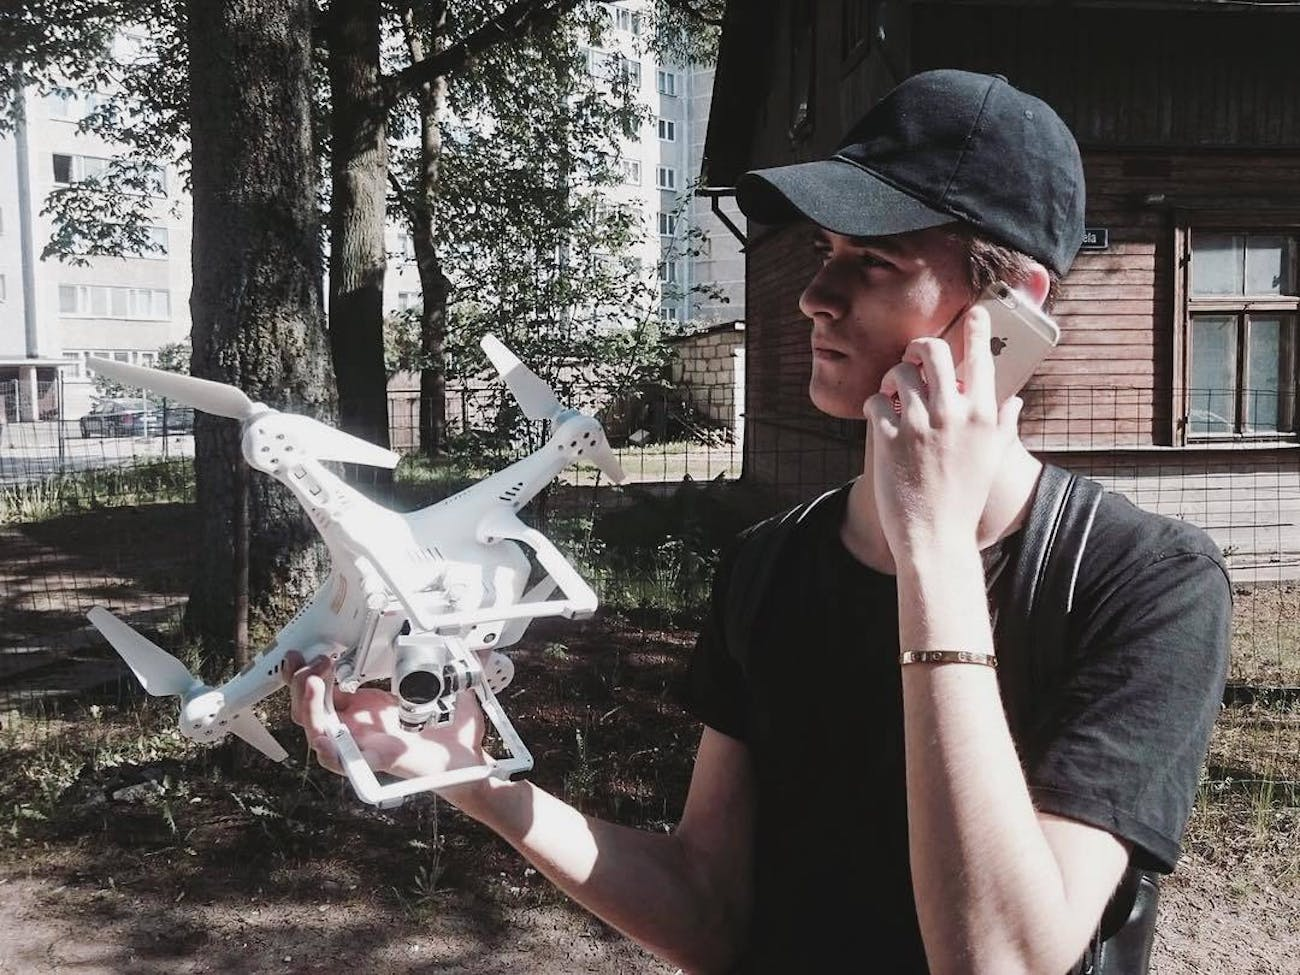 Geskin holding a drone.